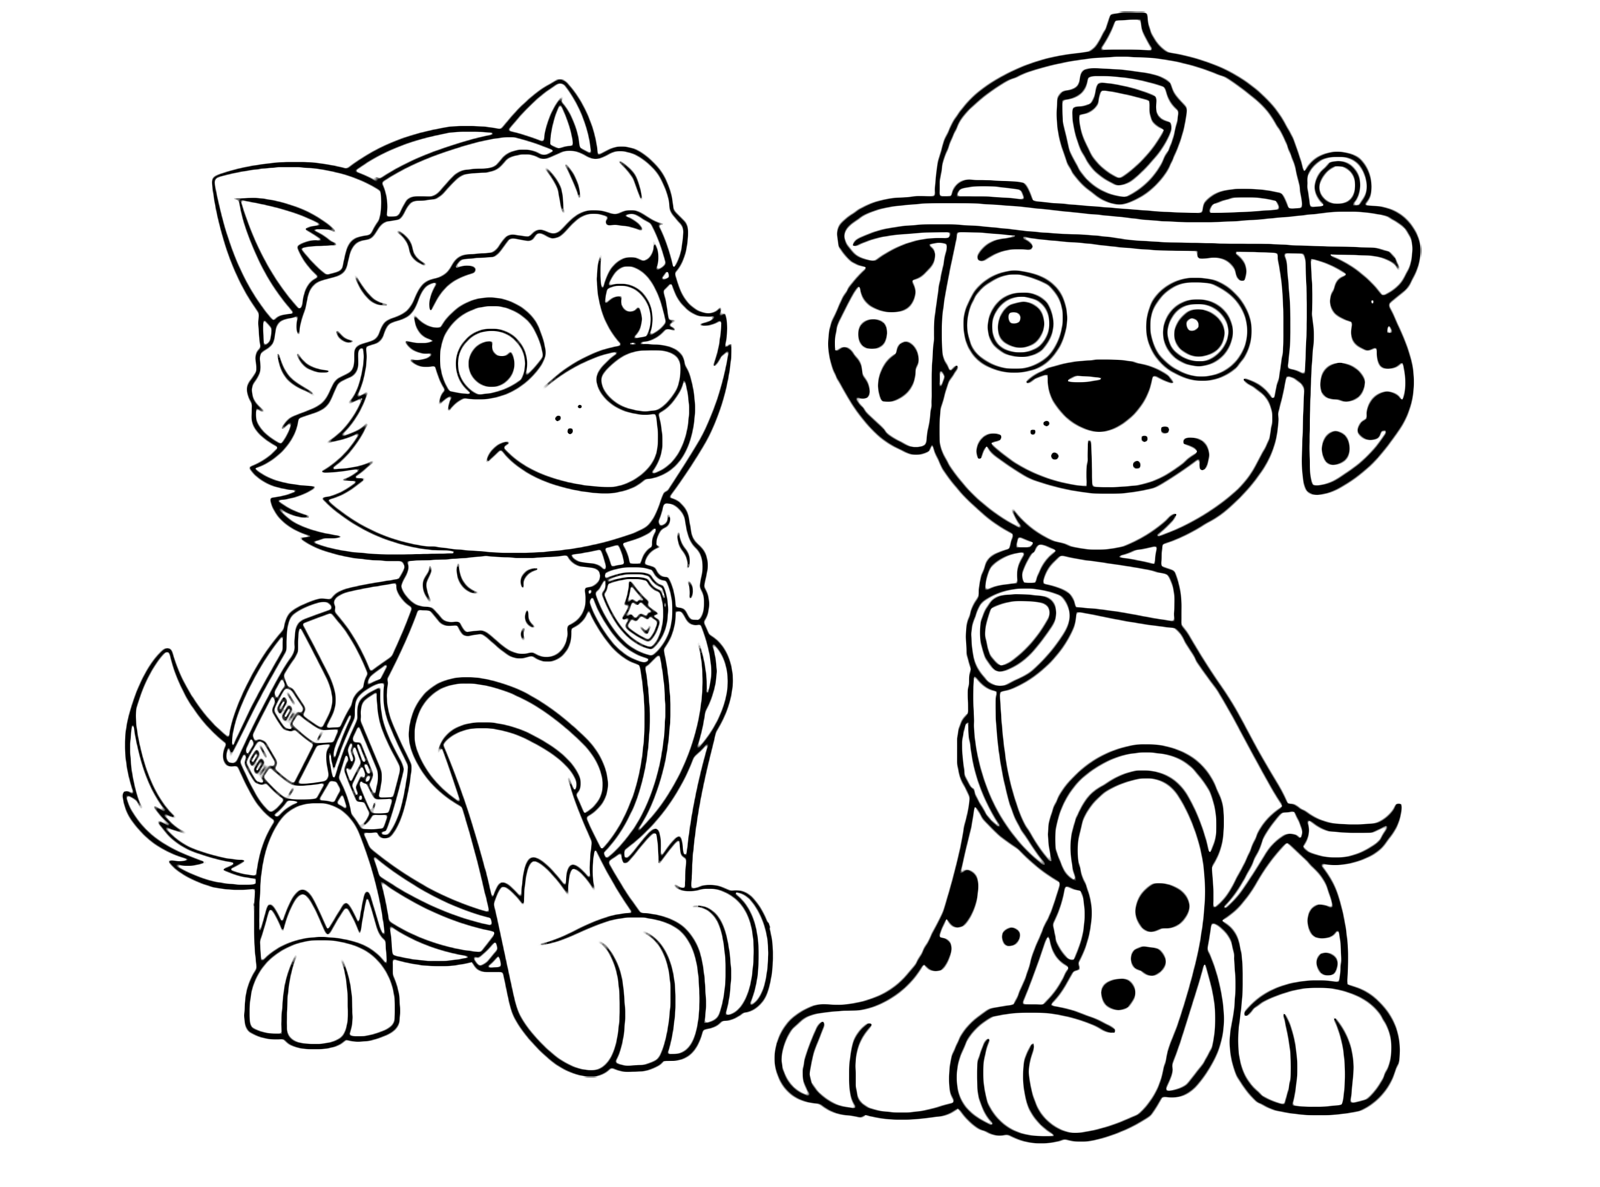 paw patrol coloring pages chase paw patrol coloring page at getdrawings free download patrol pages paw coloring